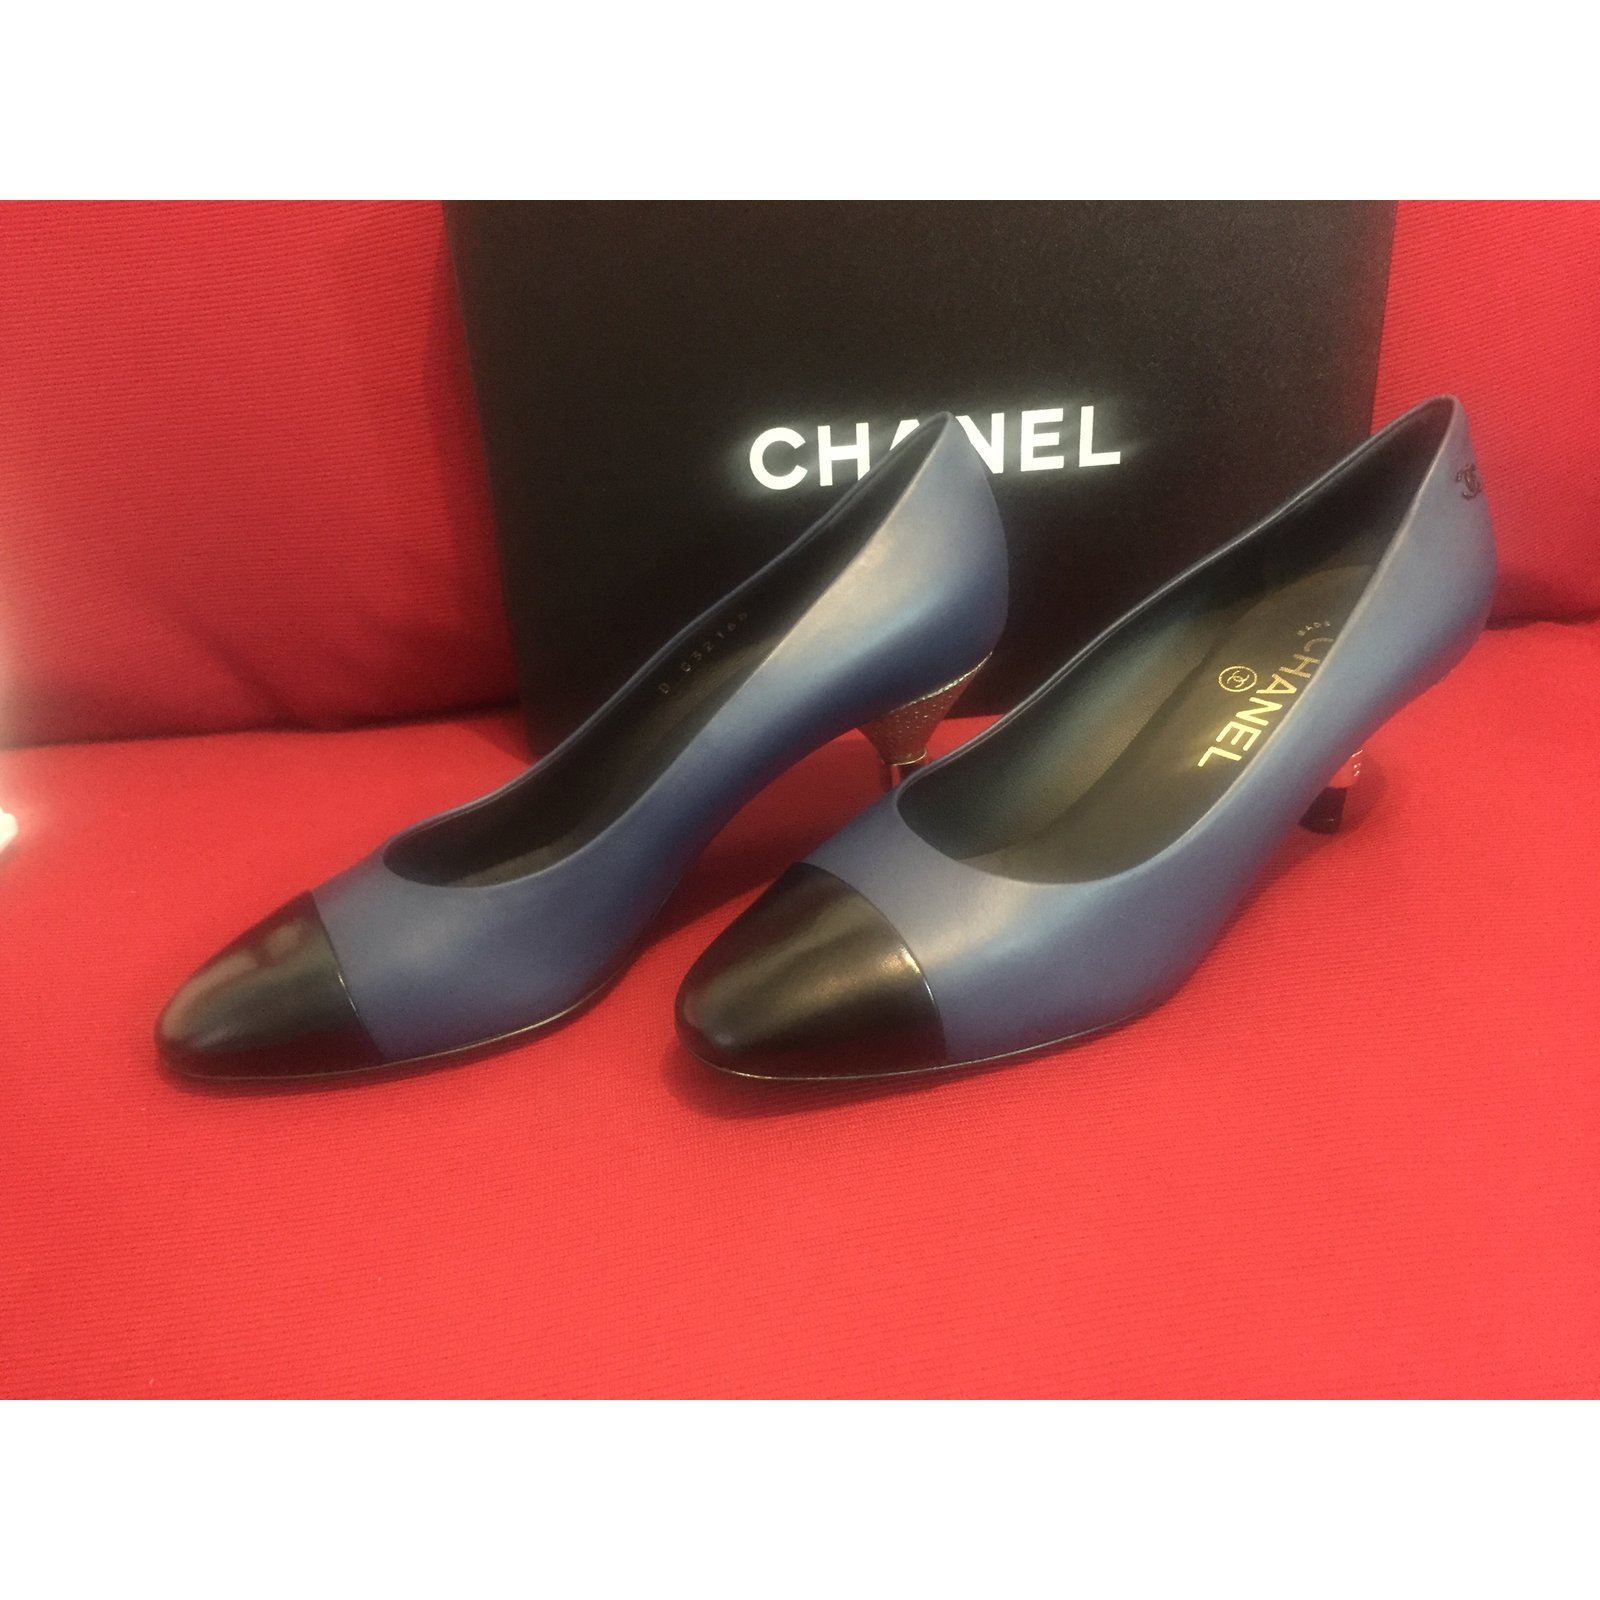 7c3a4a33a963 Facebook · Pin This. Chanel Heels Flats Leather Blue ref.41184